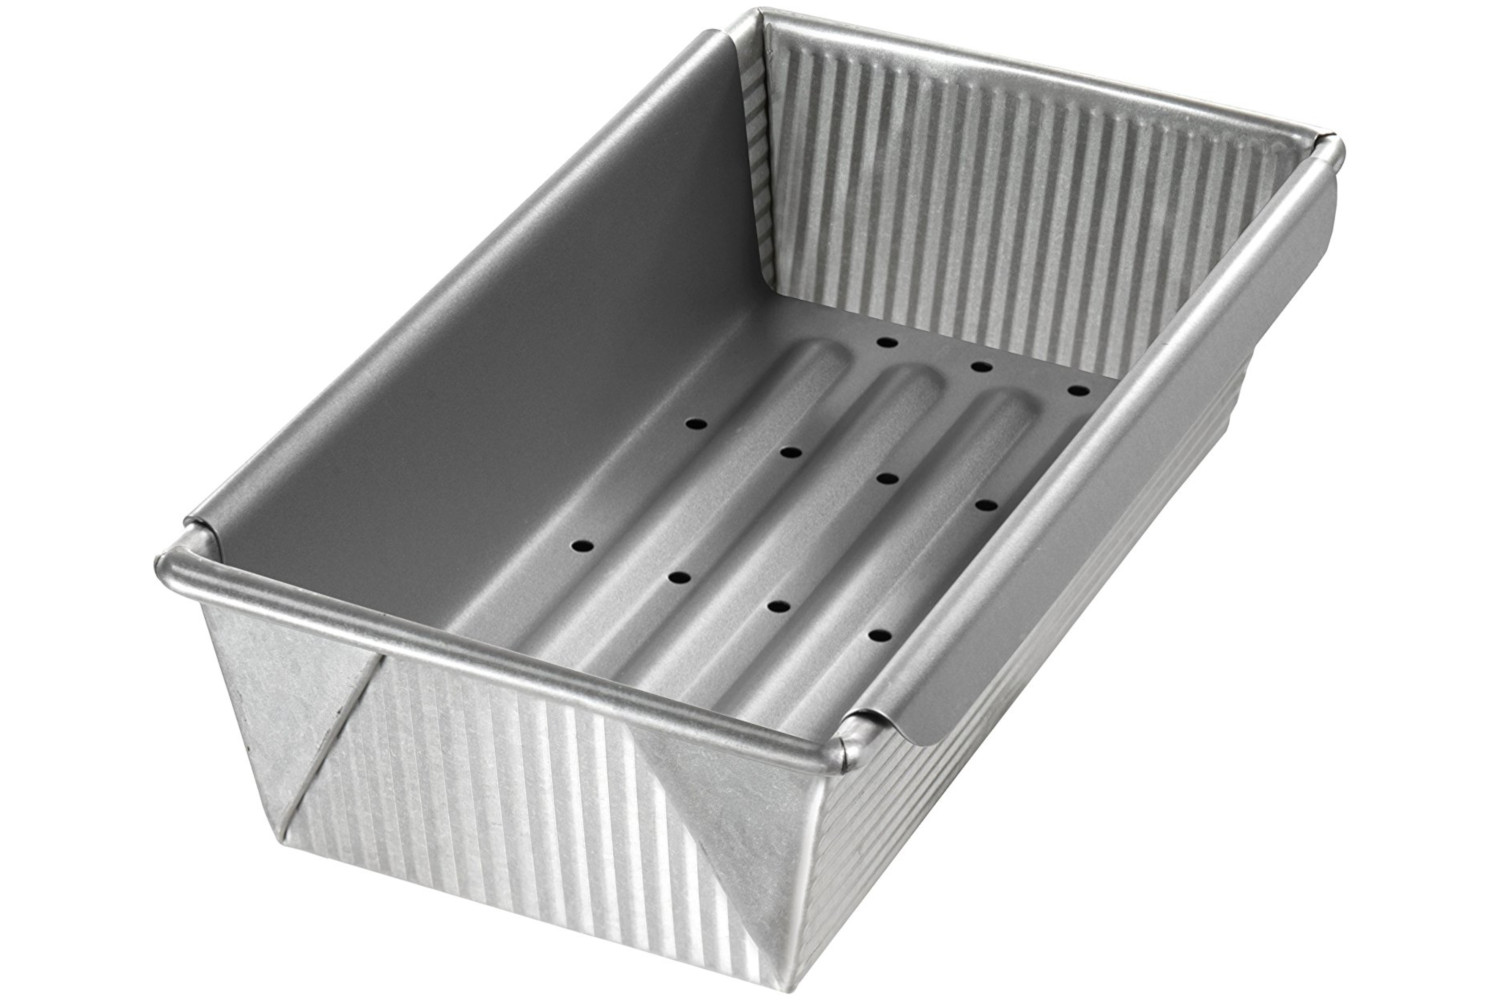 USA Pan Bakeware 10 x 5 x 3 inch Meat Loaf Pan w/Insert